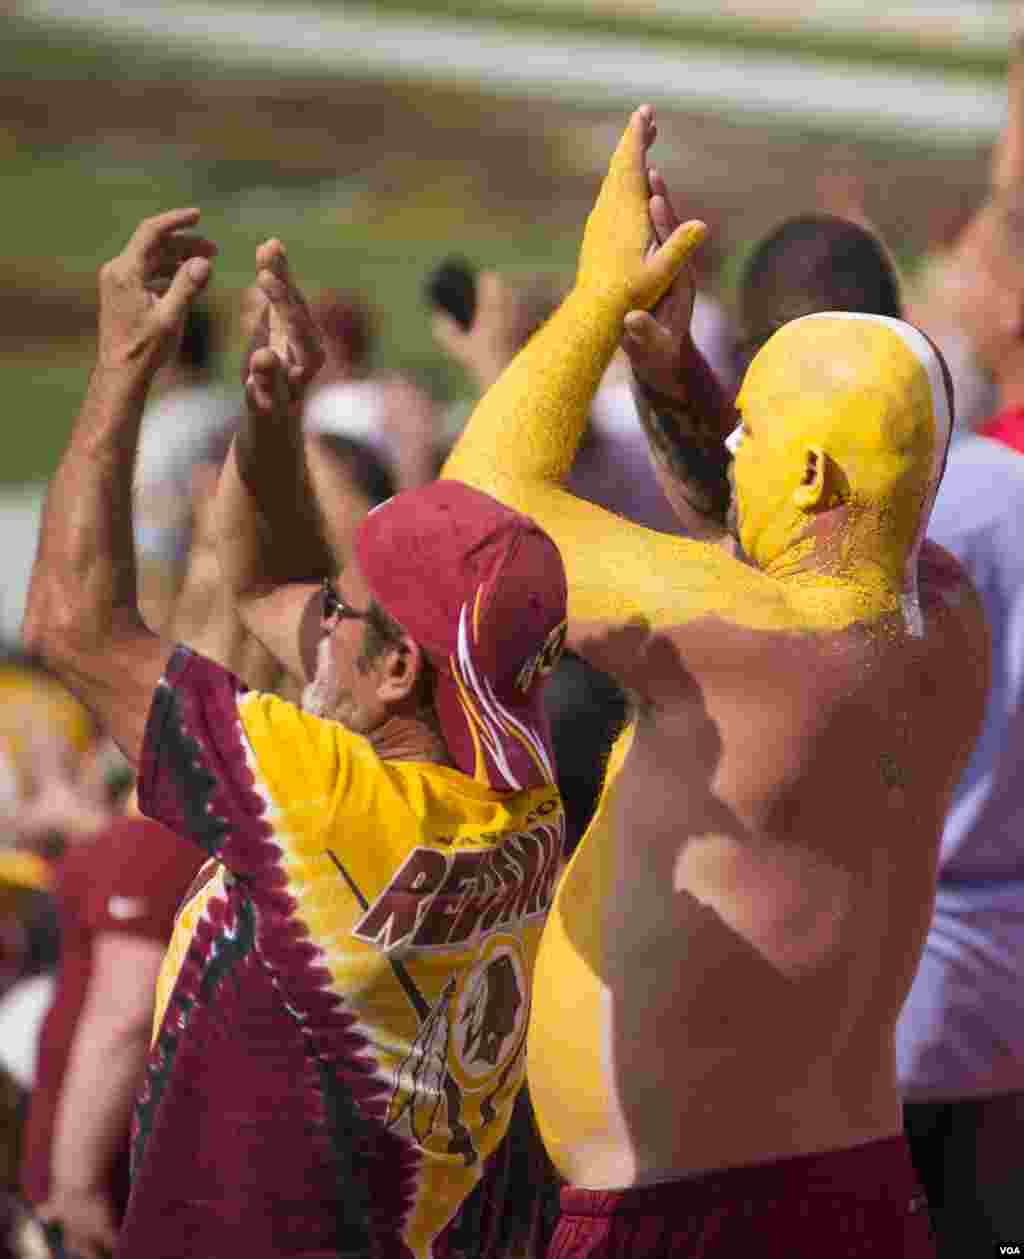 Fans cheer as the Washington Redskins play the Jacksonville Jaguars, at FedEx Stadium in Landover, Maryland, Sept. 14, 2014. (VOA / Frank Mitchell)